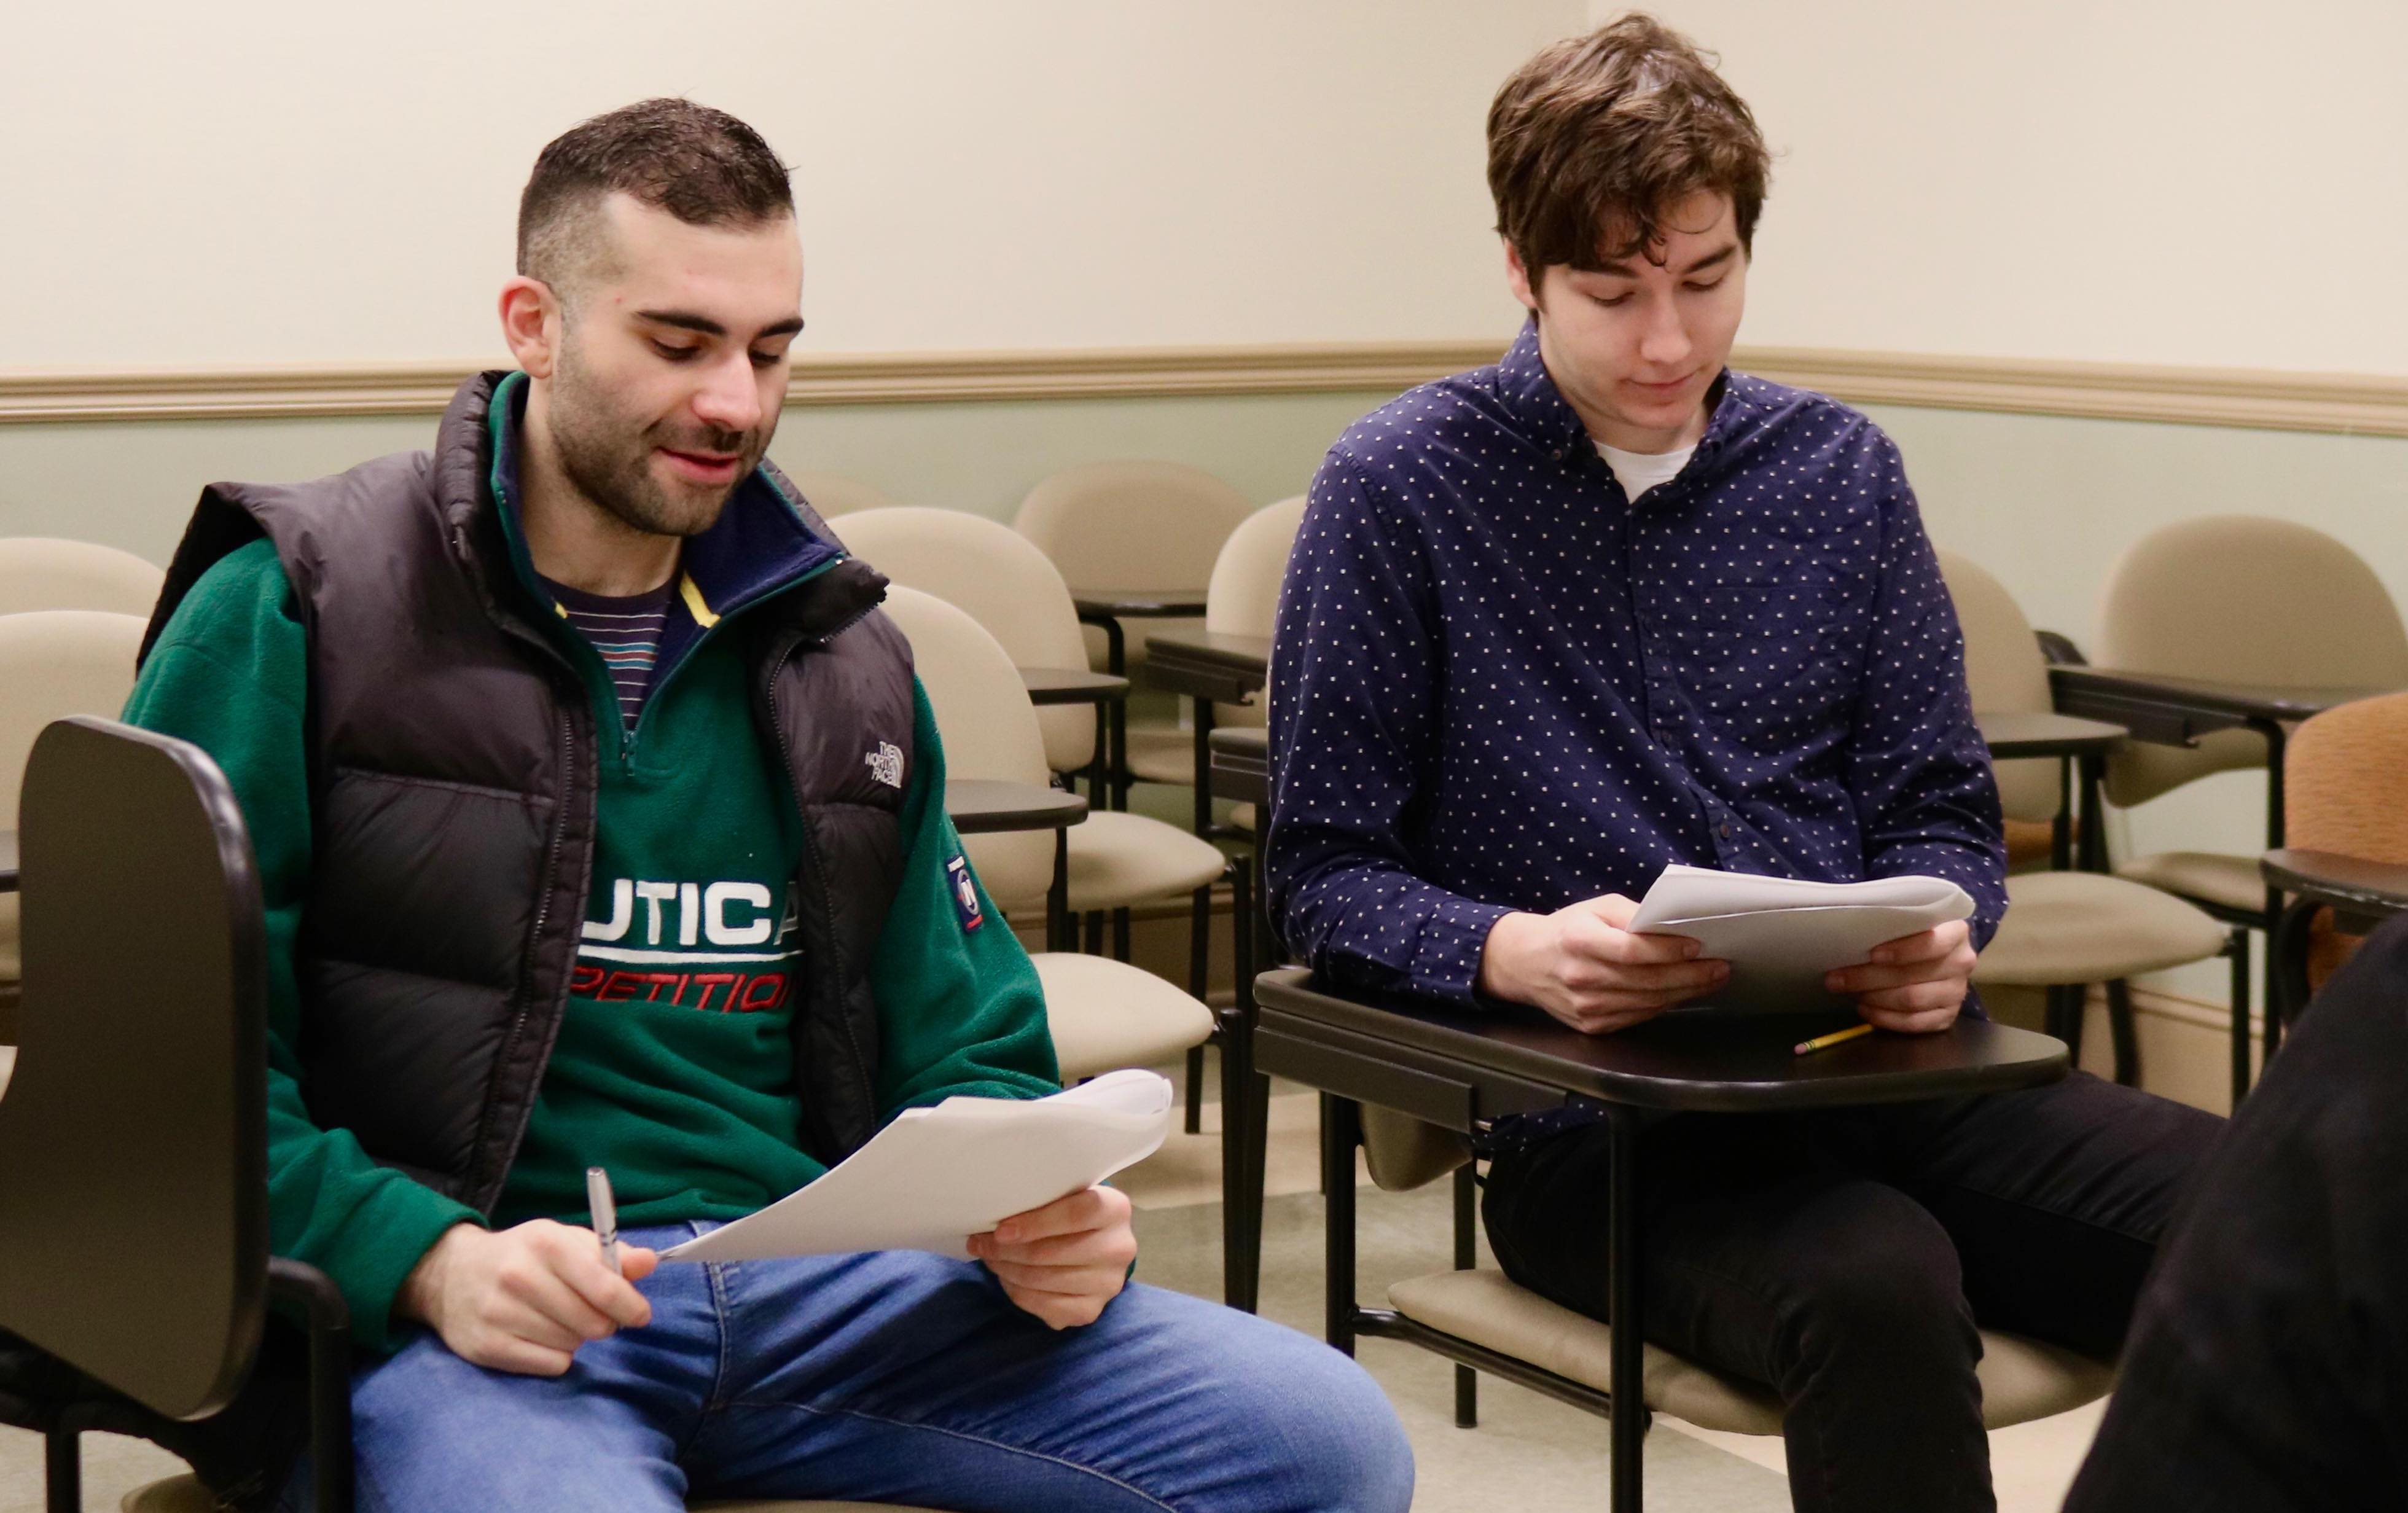 Julian Abraham and Jakob Postlewaite host the Feb. 13 episode of The Signal.